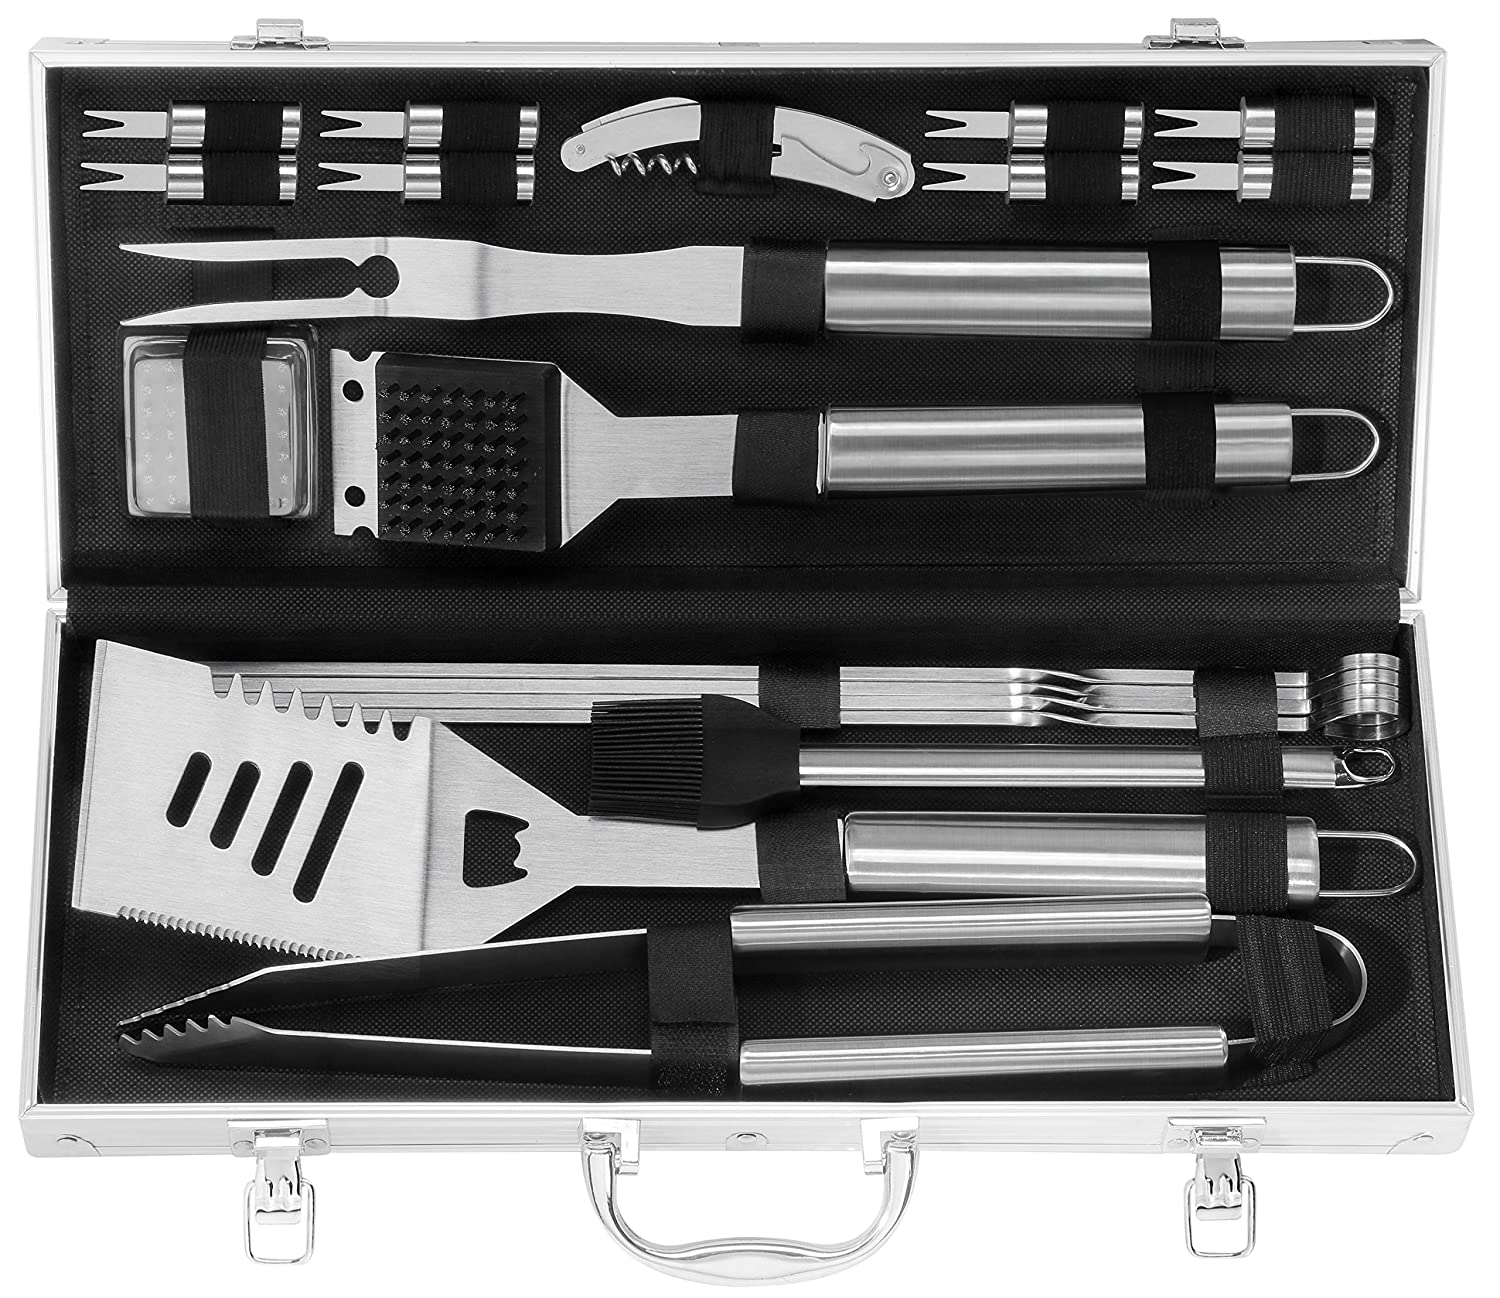 Grilljoy 20PCS Heavy Duty BBQ Grill Tools Set. Extra Thick Stainless Steel Spatula, Fork, eTongs Cleaning Brush. Complte Barbecue Grilling Accessories Kit in Aluminum Storage Case. Dishwasher Safe